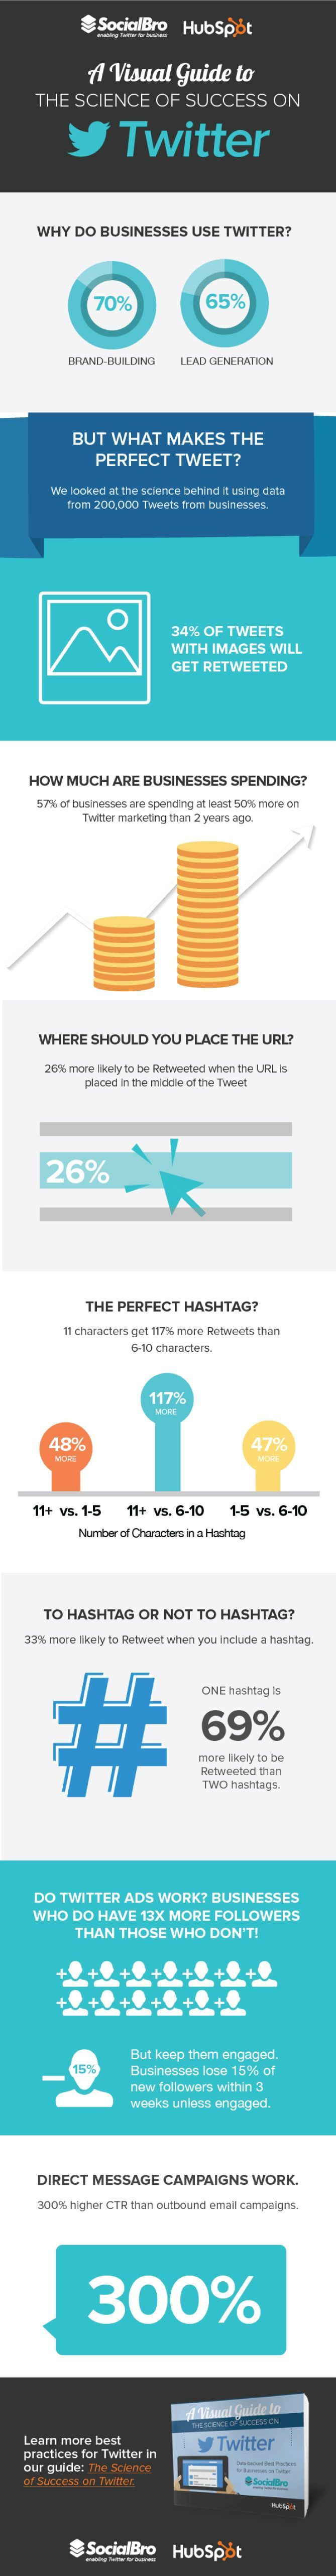 A Visual Guide to the Science of Twitter Success [Infographic]